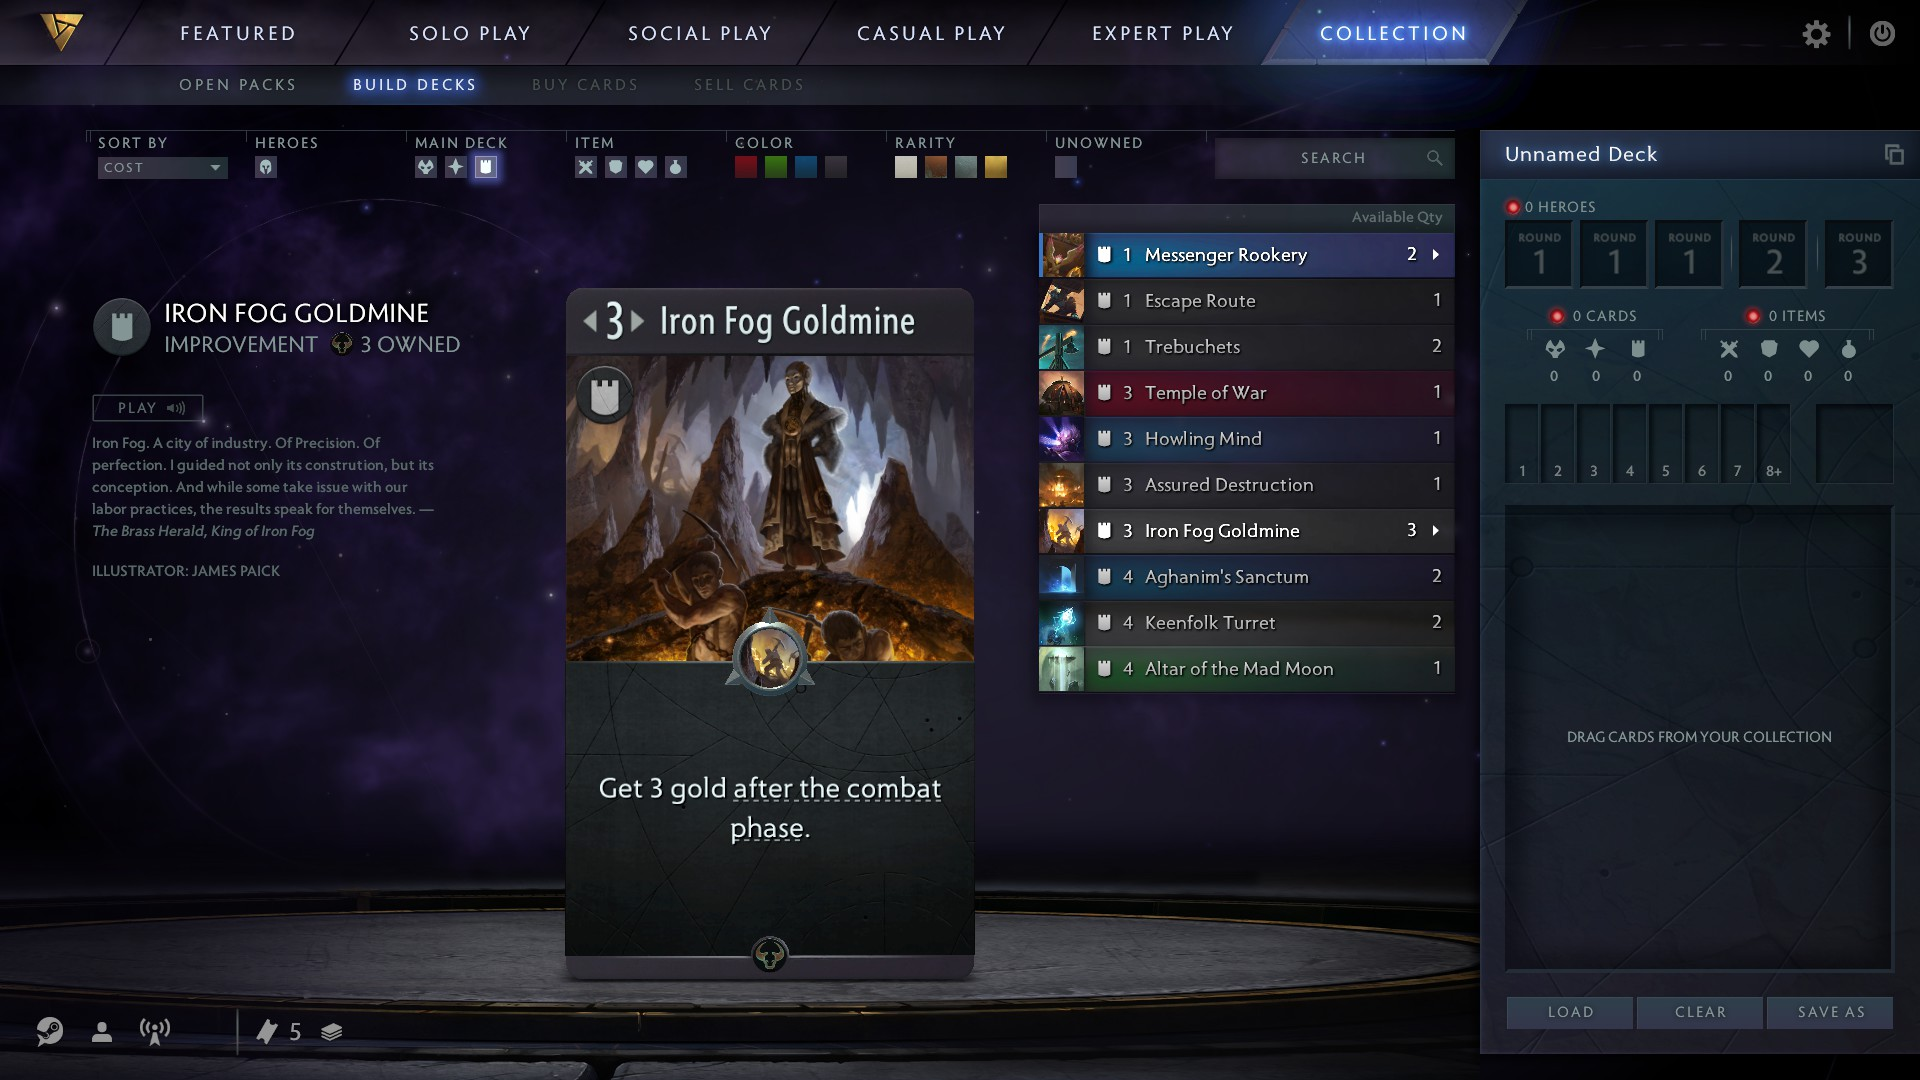 Black card called Iron Fog Goldmine is highlighted The number 3 on the top left has two arrows, indicating it can be played in any lane.